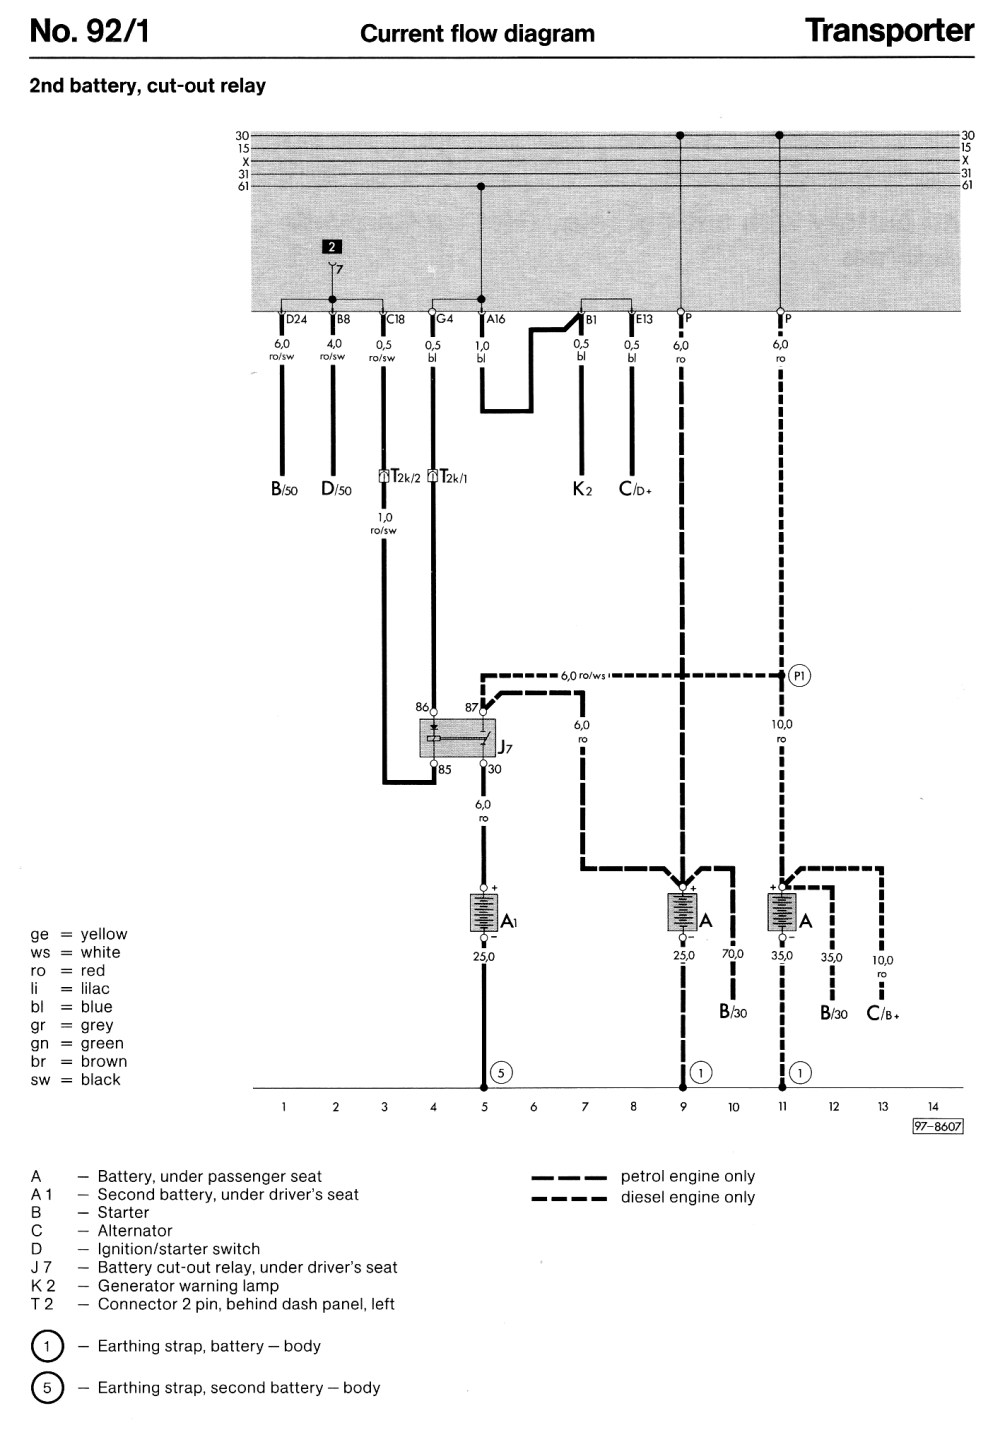 medium resolution of second battery cut out relay